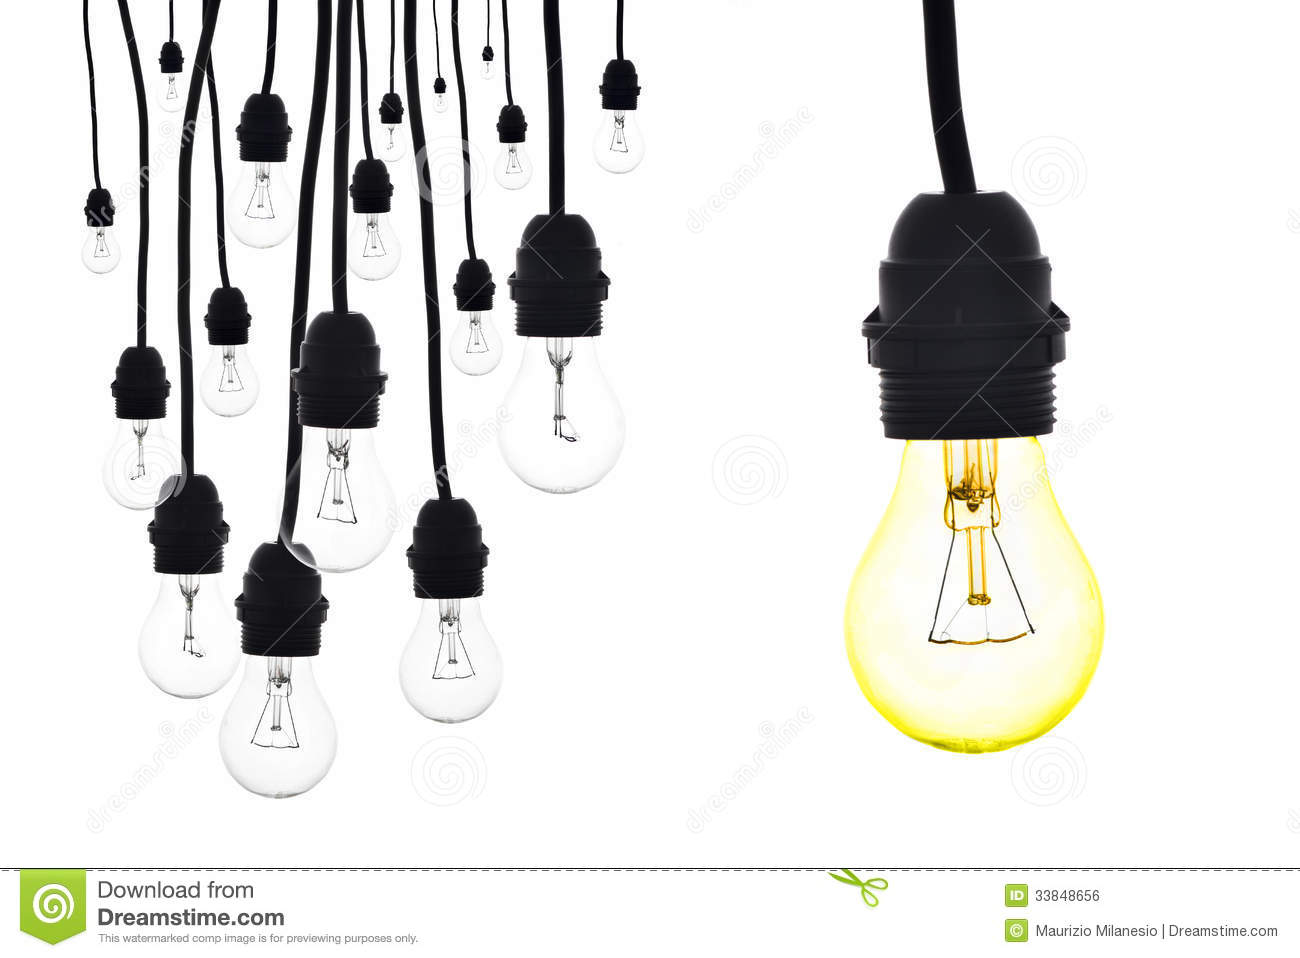 Basic Concepts Of Passive Optical  works Gepon Gpon Fttx in addition Will India Be e Home To Hundreds Of Thousands Of Electric Vehicles furthermore Royalty Free Stock Image Yellow Light Bulb Hanging Next To Number L s Bulbs White Image33848656 further Electricity And Mag ism Basic Concepts besides 5. on electrical concepts